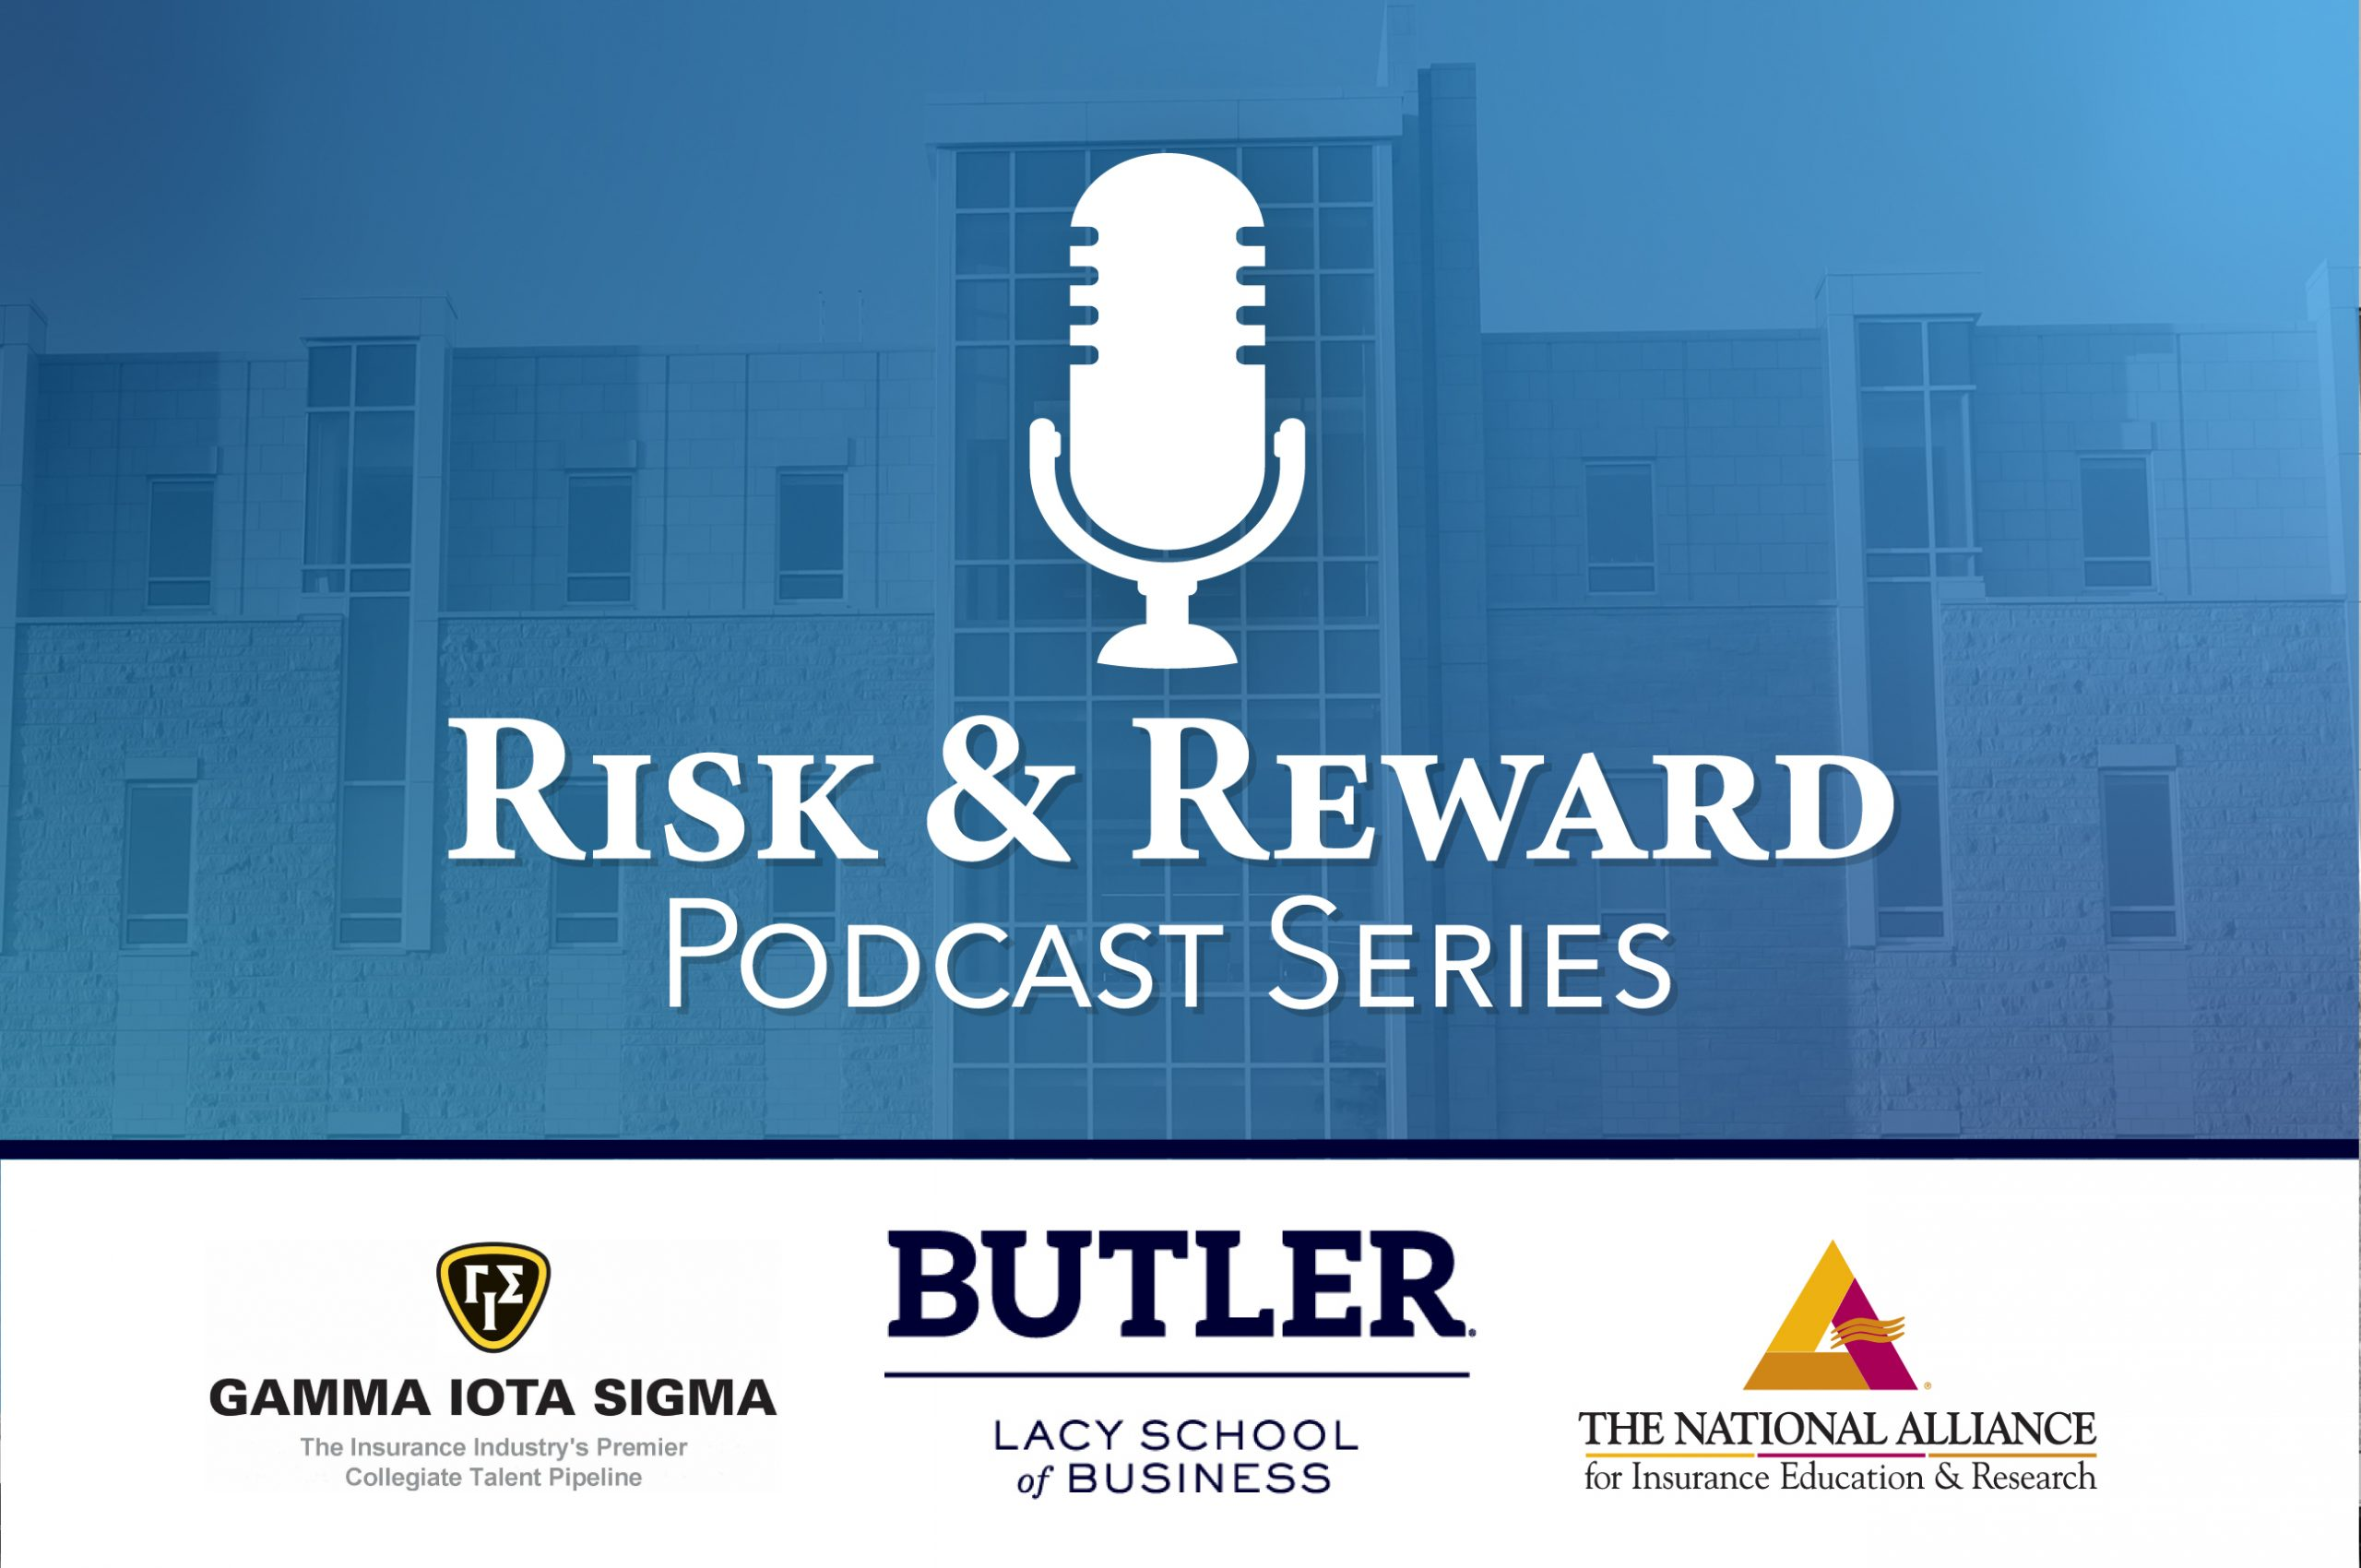 Risk & Reward Logo, Professional Journey, Interview